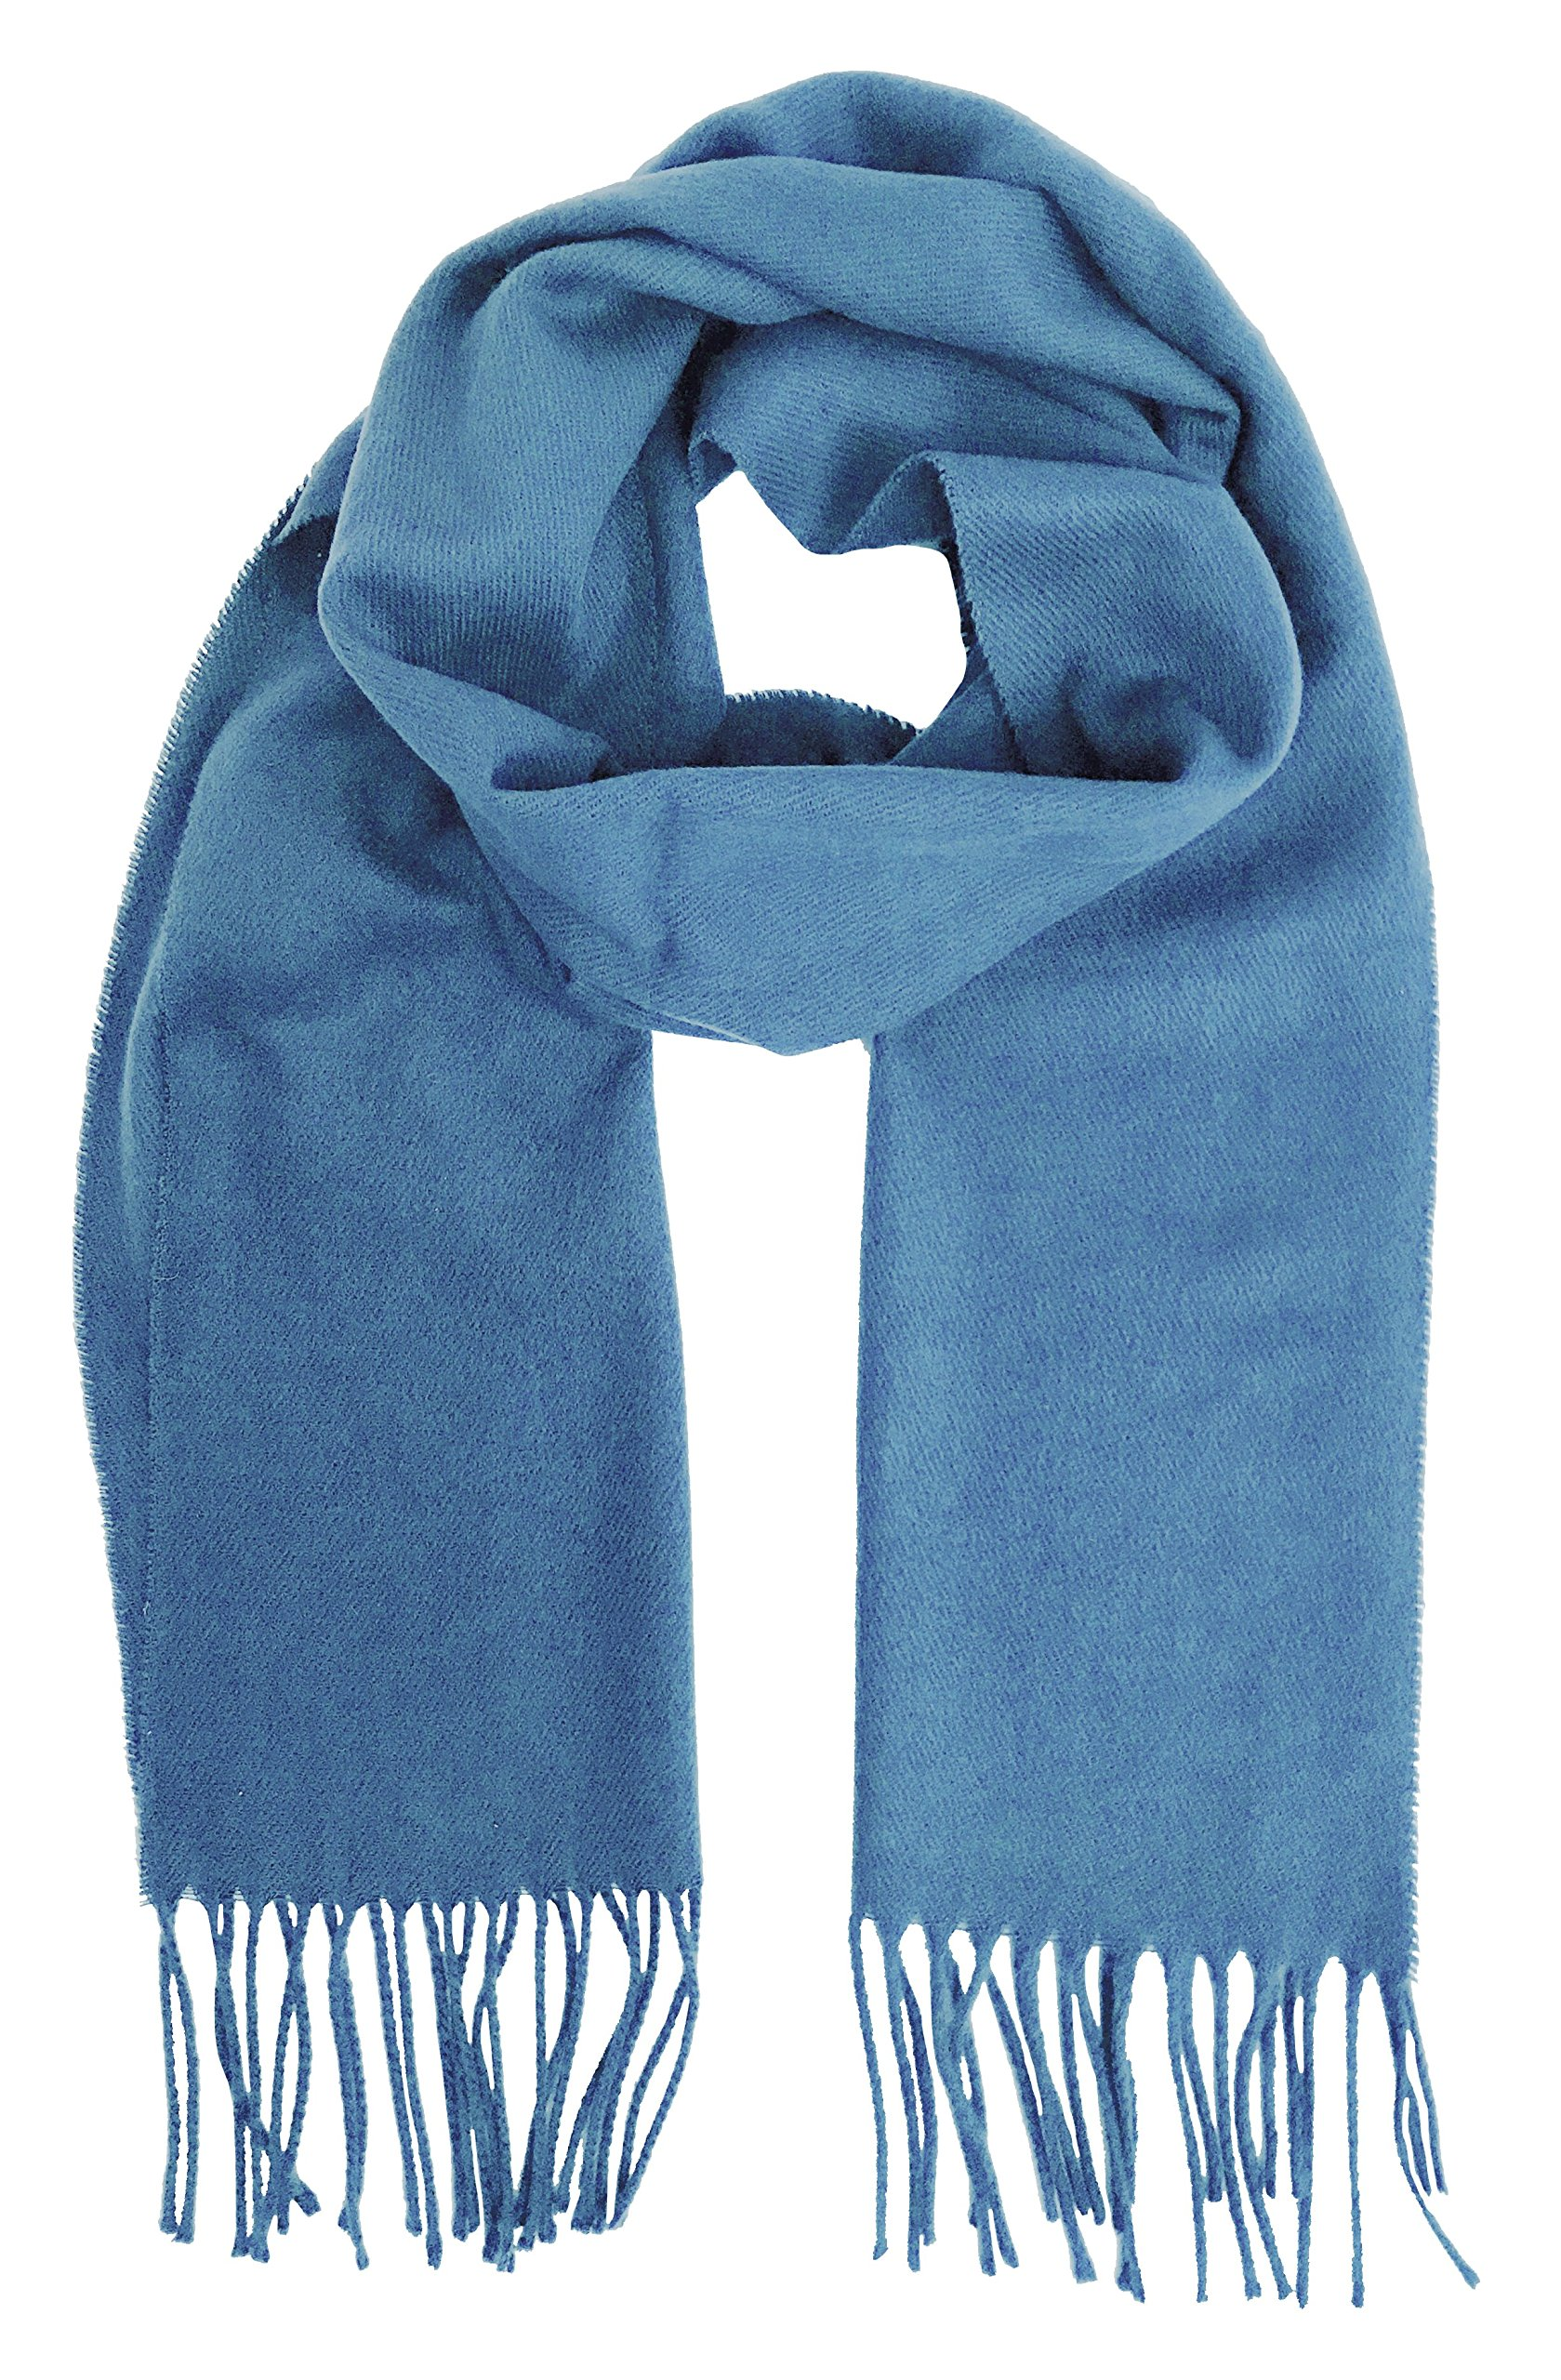 Geoffrey Beene Men's Scarf Cashmere Feel Made in Italy (Blue)